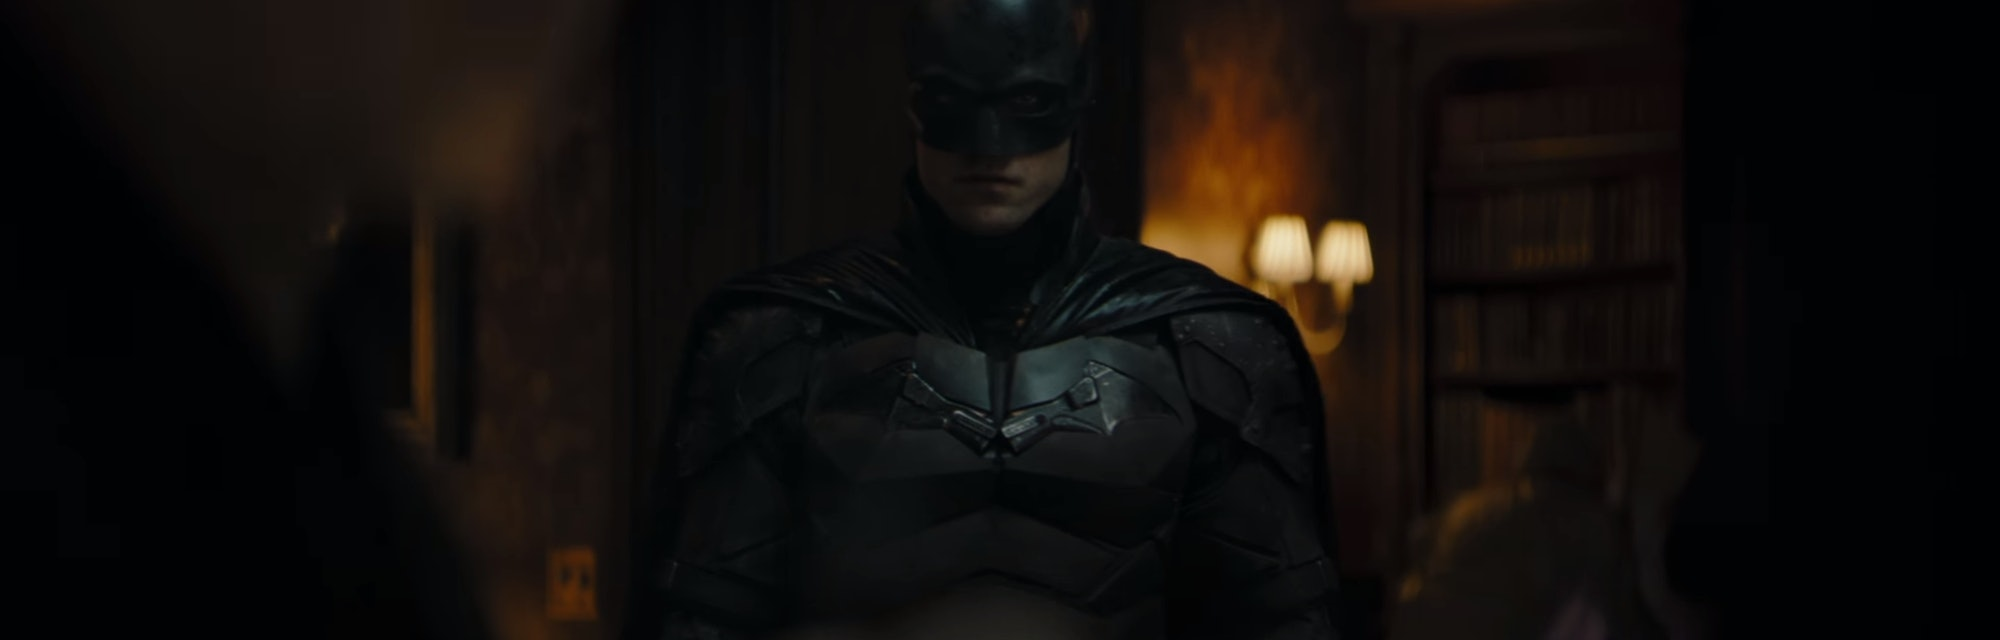 The Batman' trailer shows